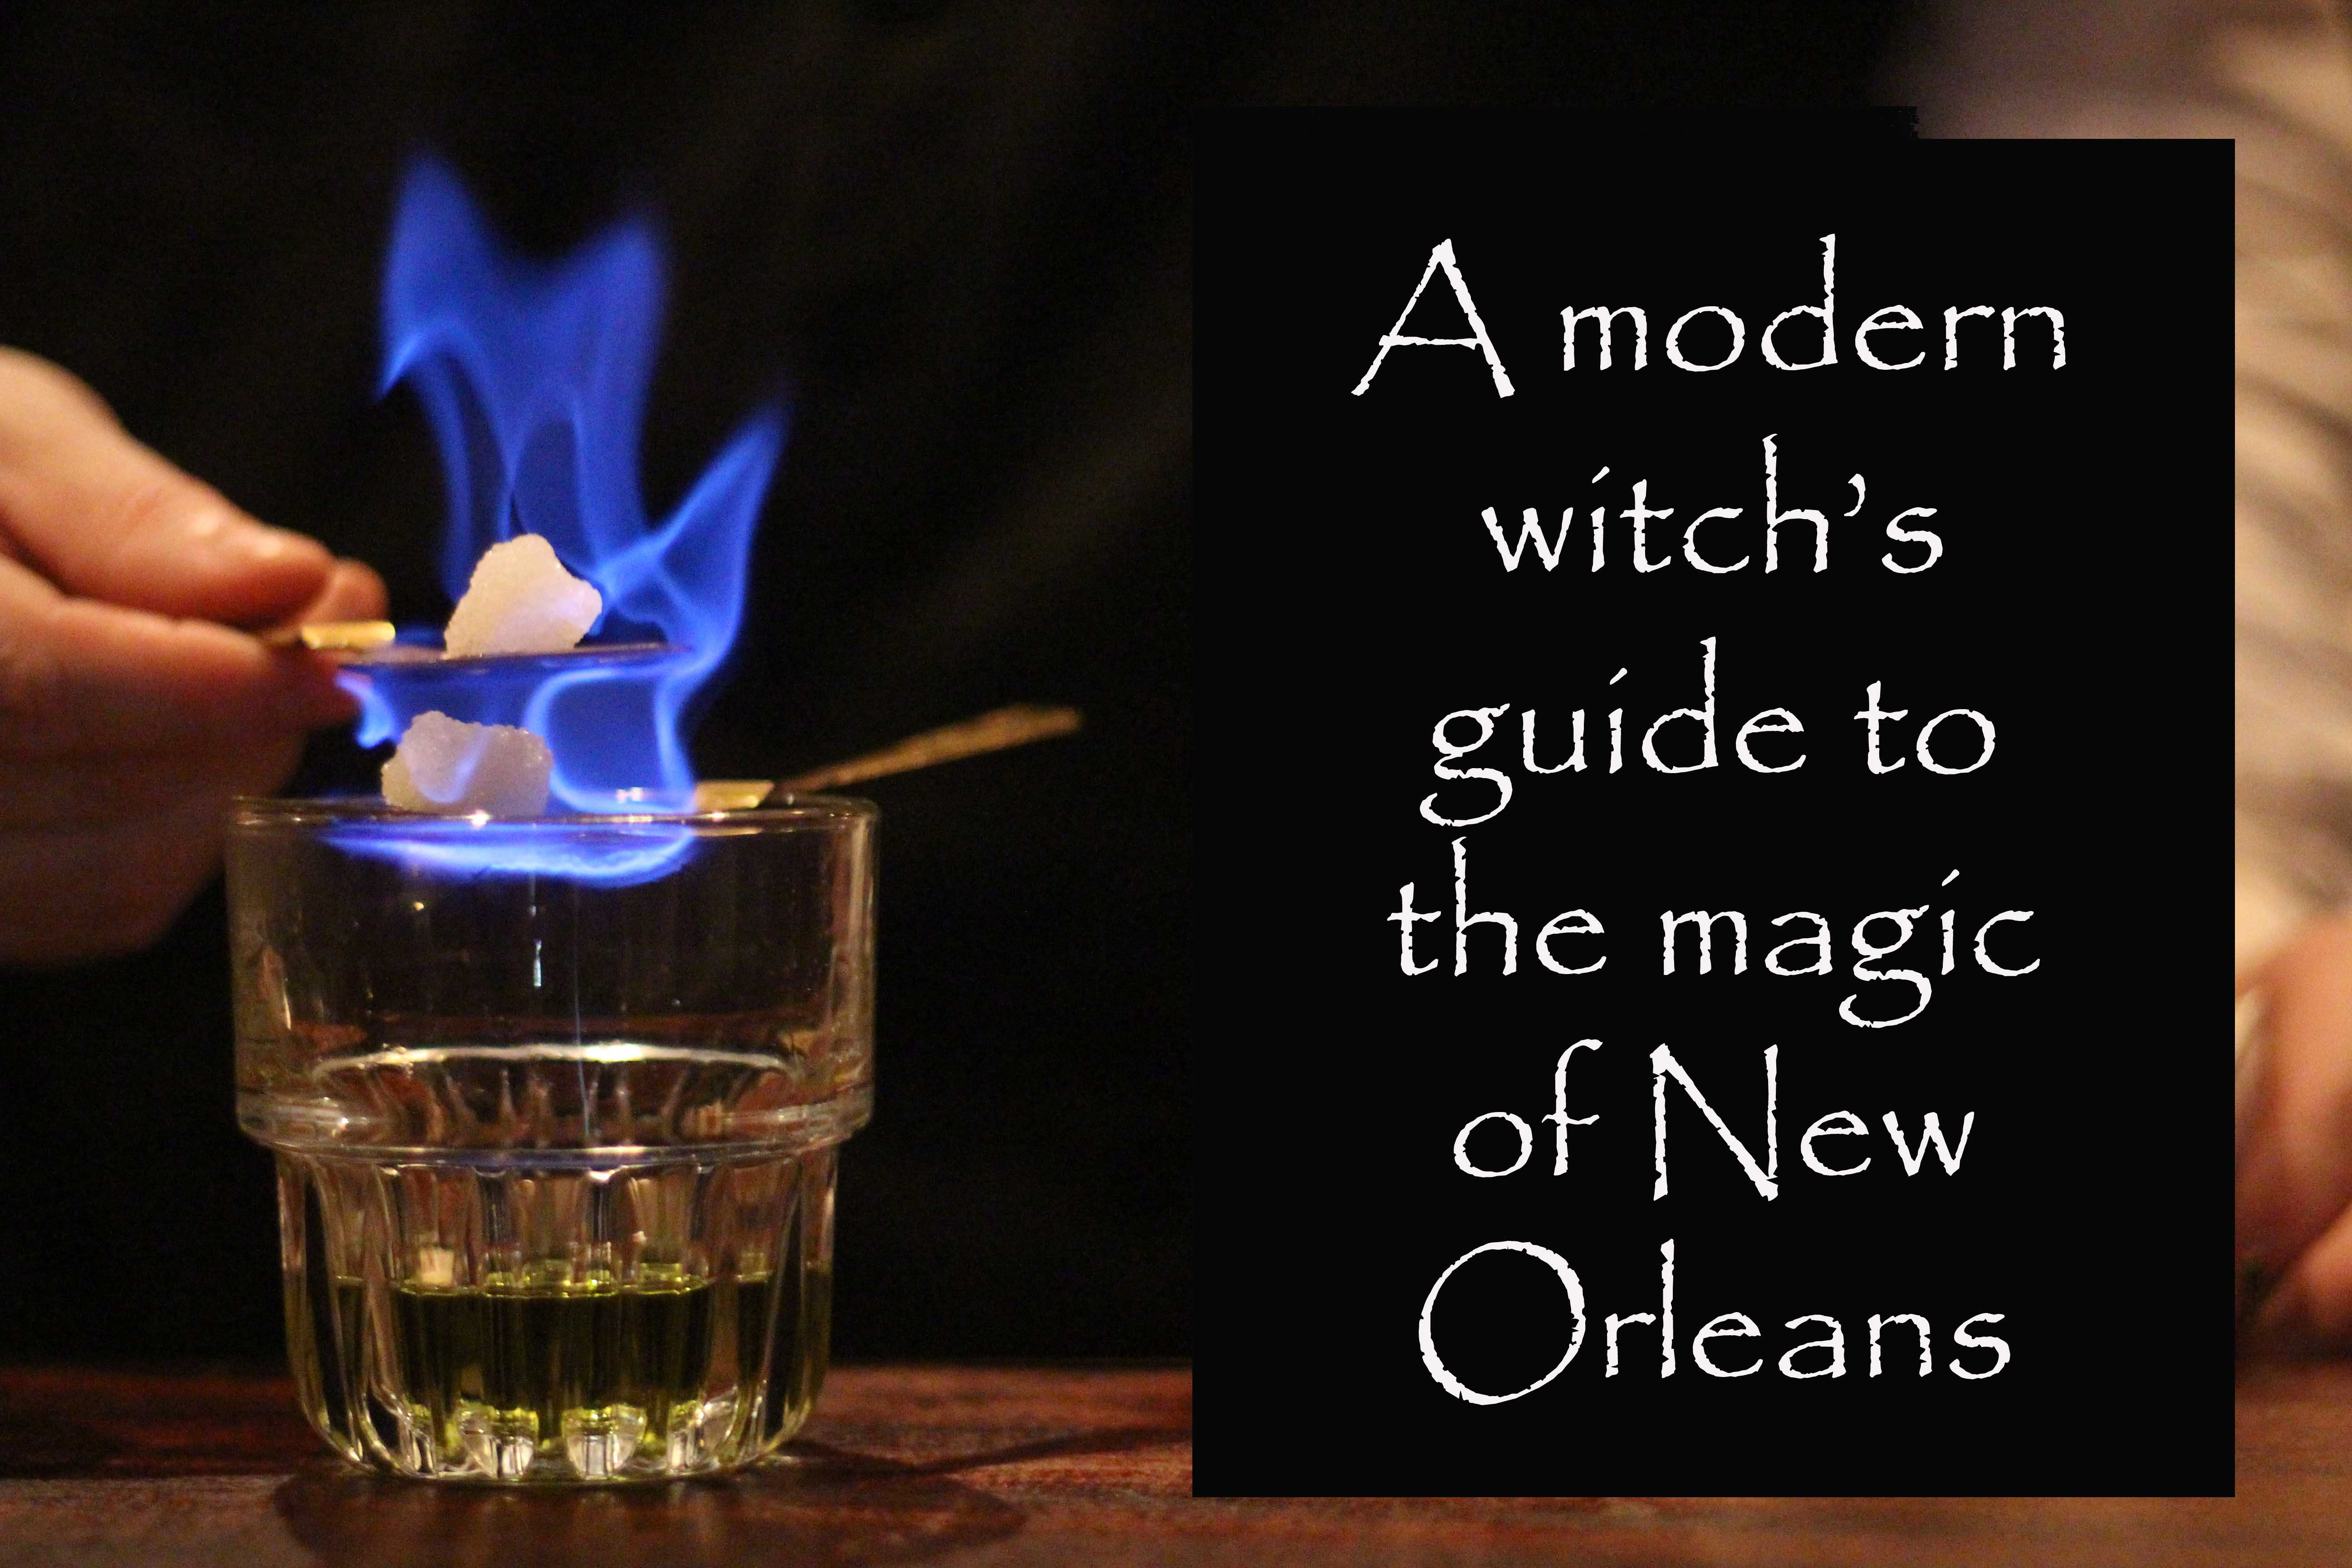 a modern witch's guide